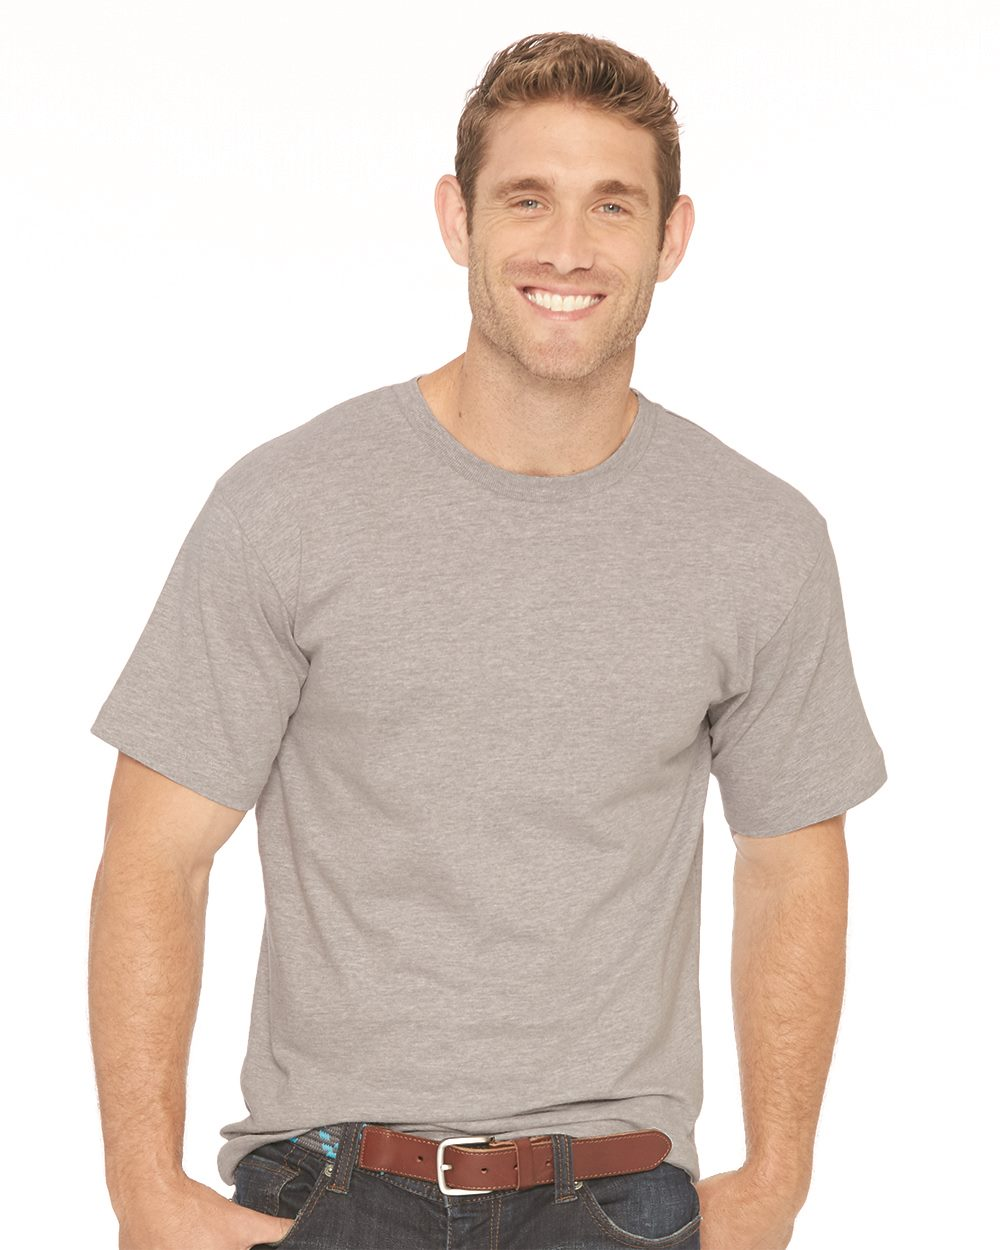 LAT 6980 - Heavyweight Combed Ringspun Cotton T-Shirt